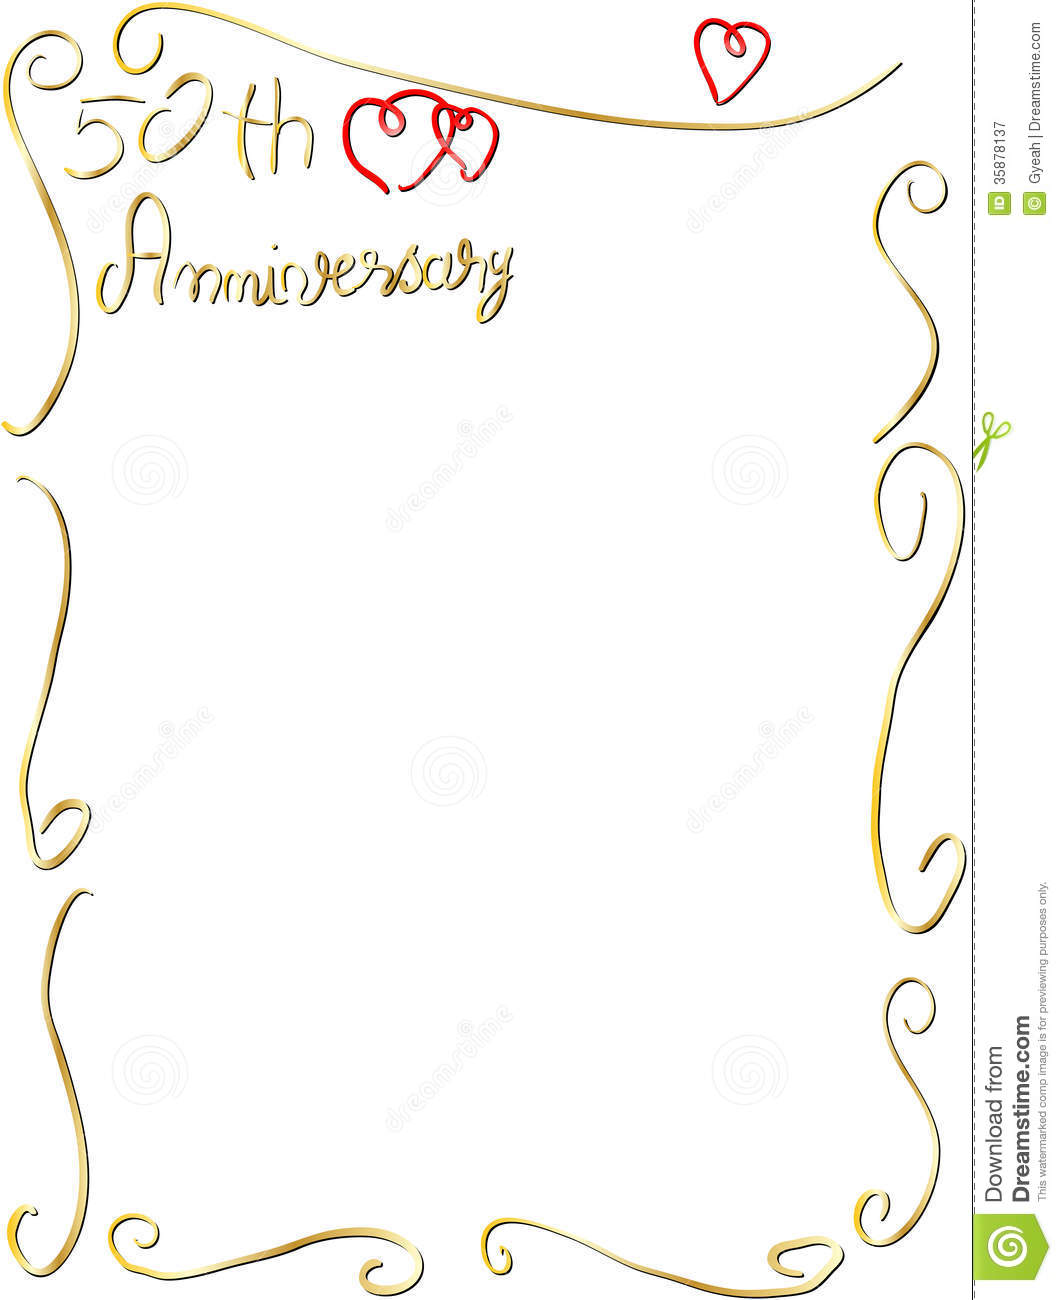 Hand Made Wedding Anniversary Border Invitation Stock